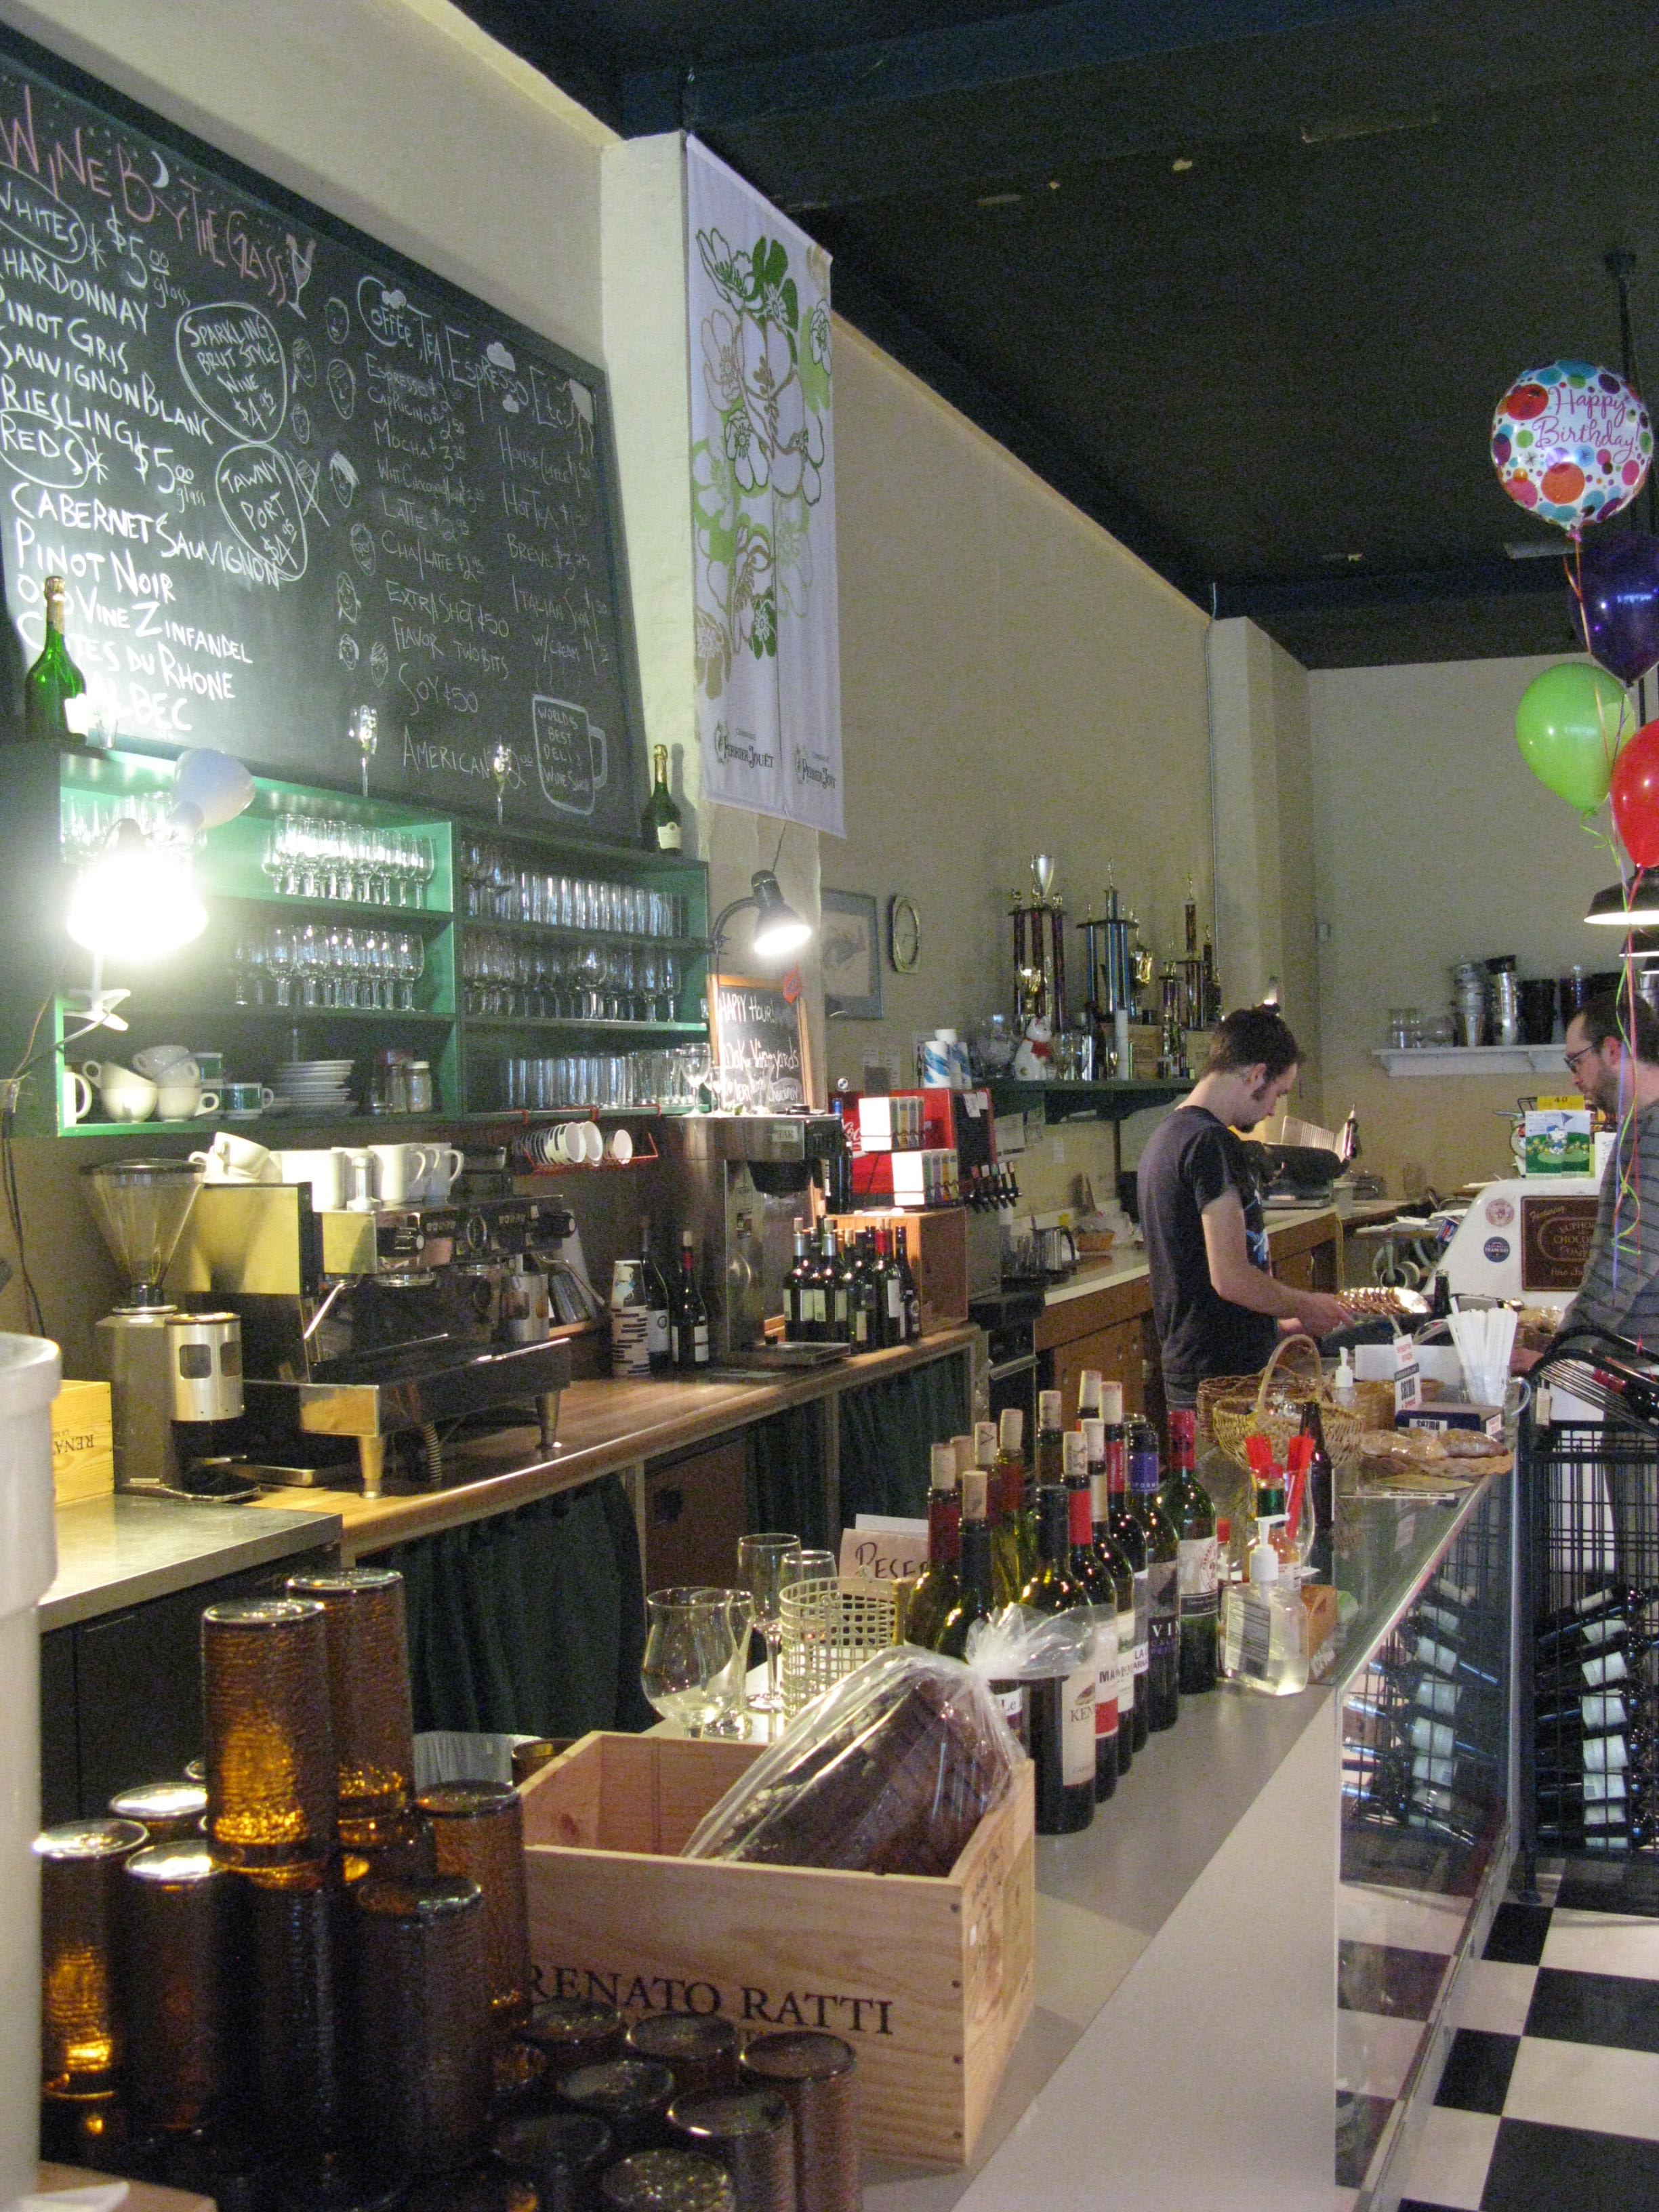 The bar at Woodstock Wine and Deli. (FoystonFoto)